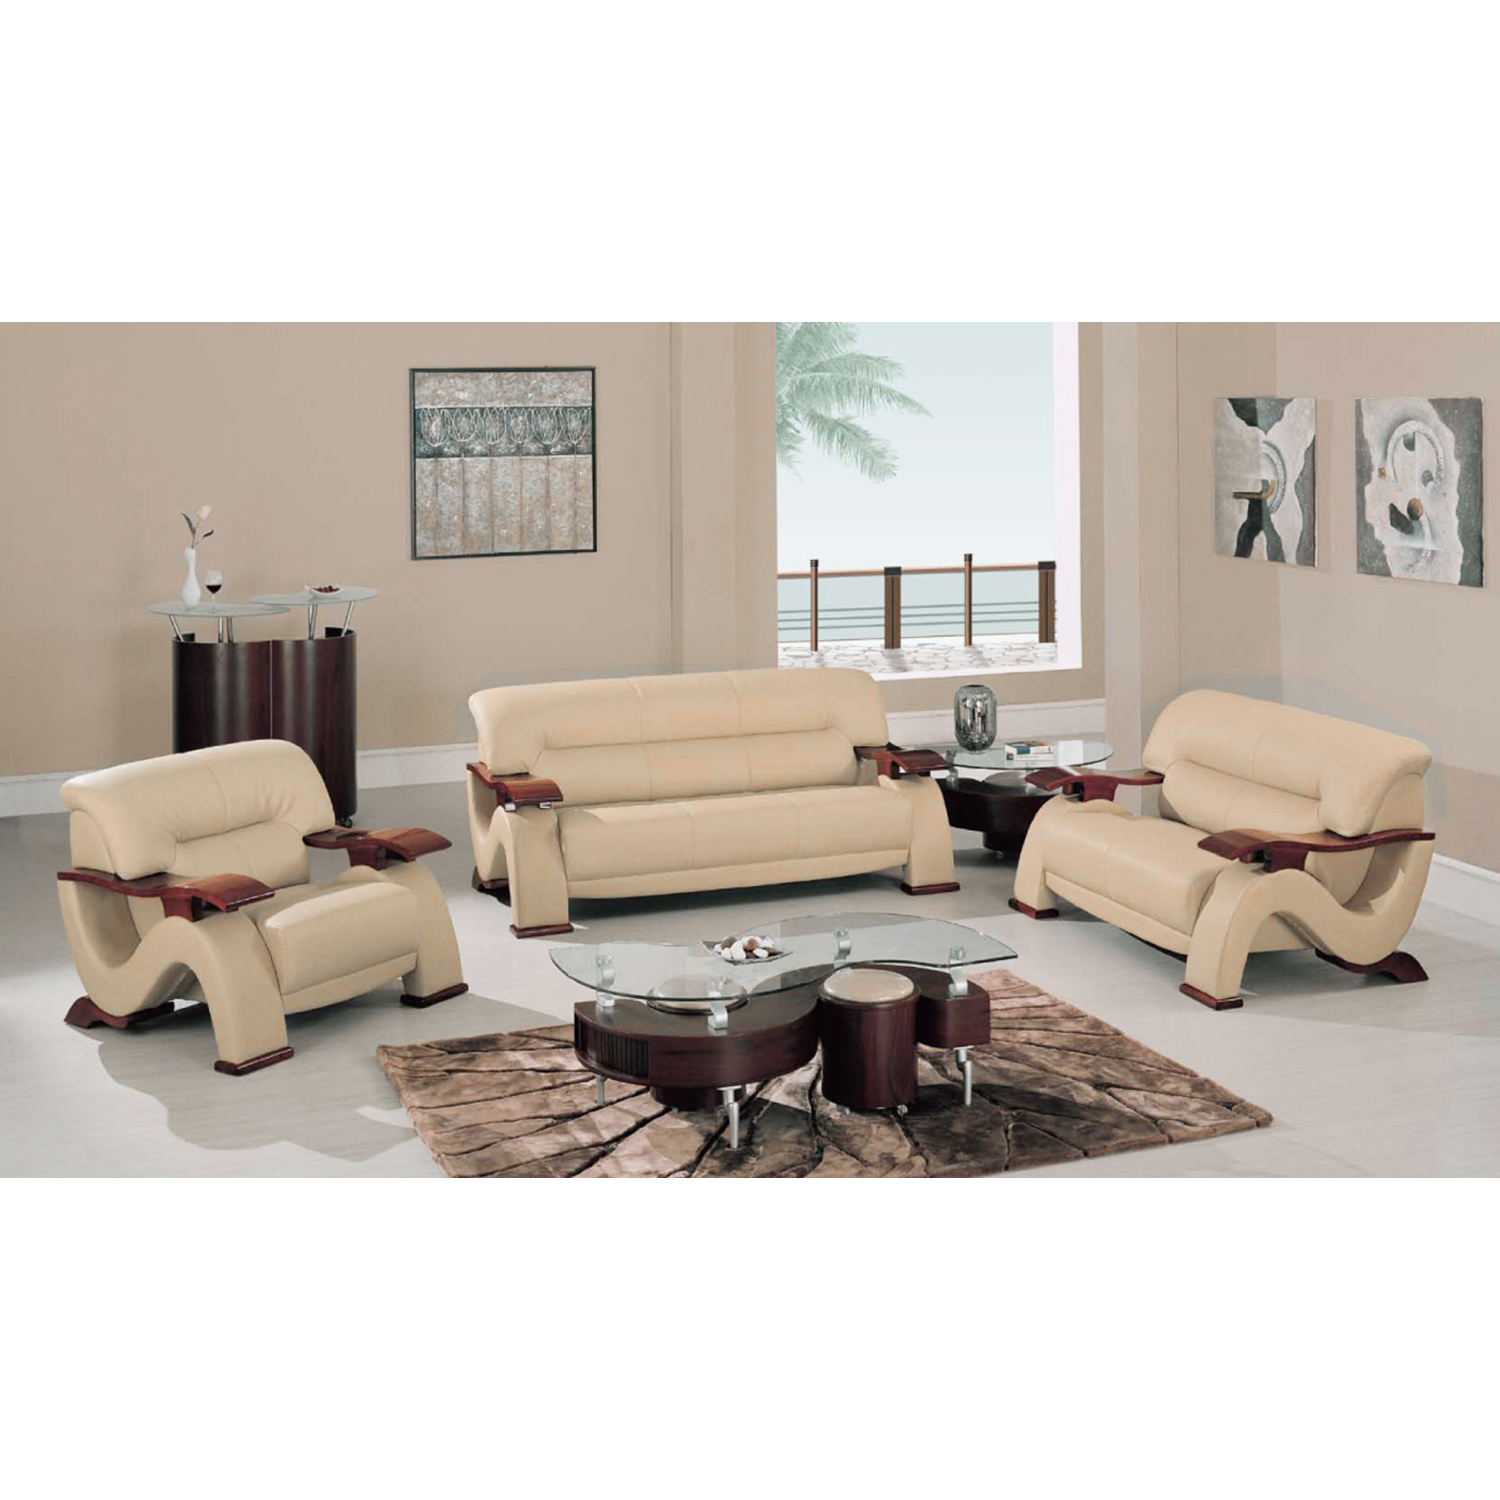 Valerie Bonded Leather Sofa Set in Cappuccino Upholstery with Mahogany Legs